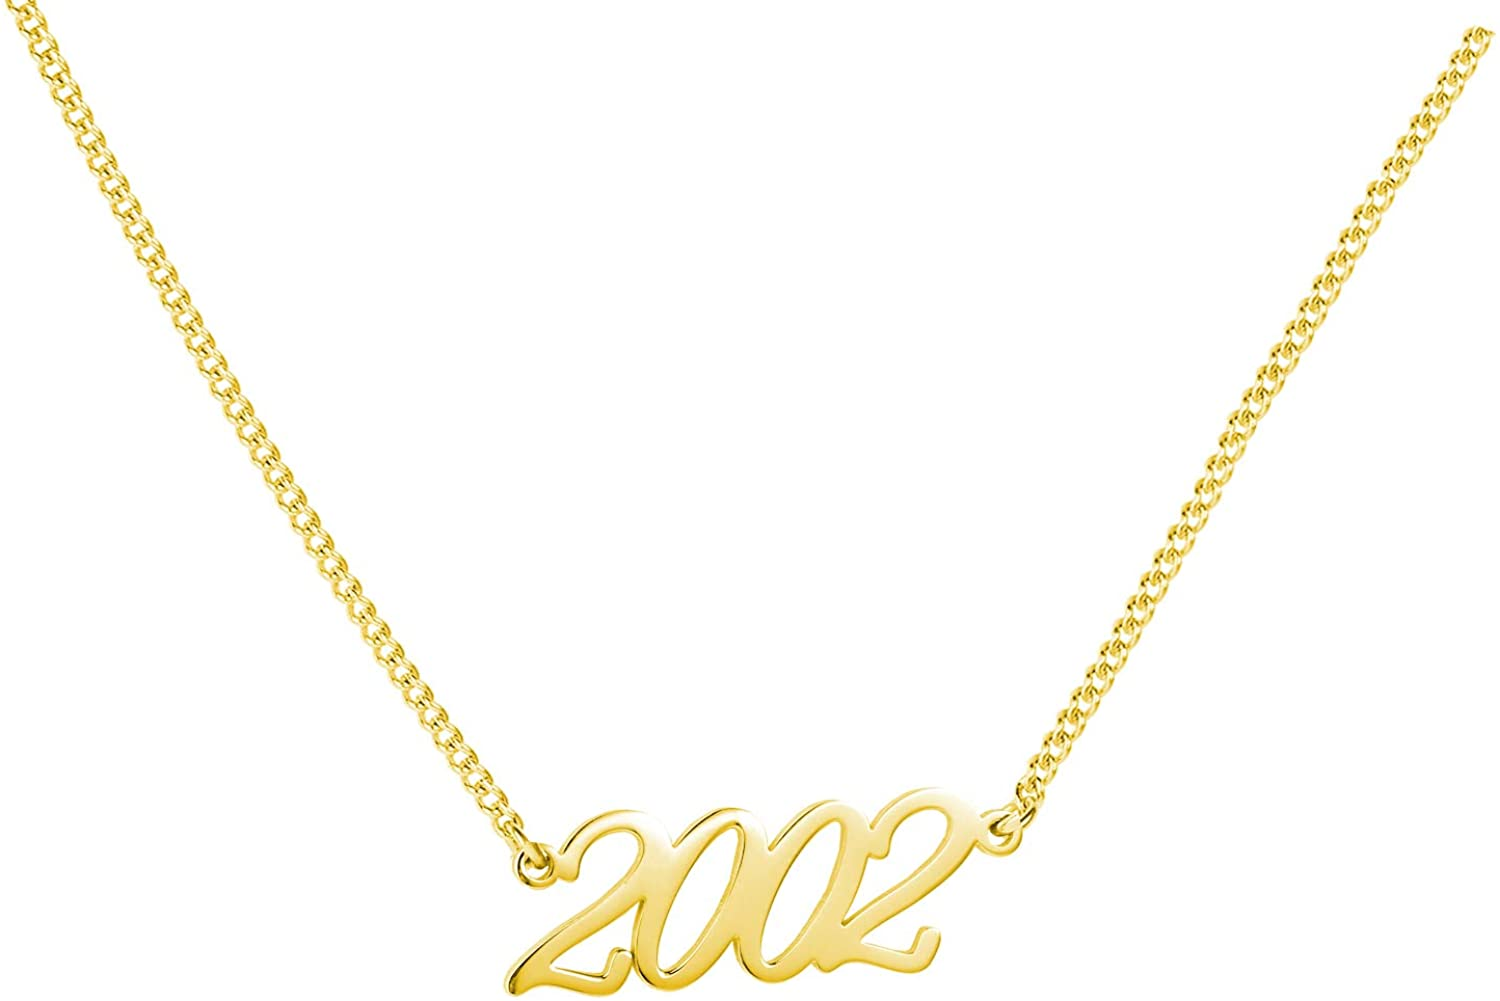 WIGERLON Birth Year Number Necklace Birthday Gift for Women and Girl Color Silver and Gold